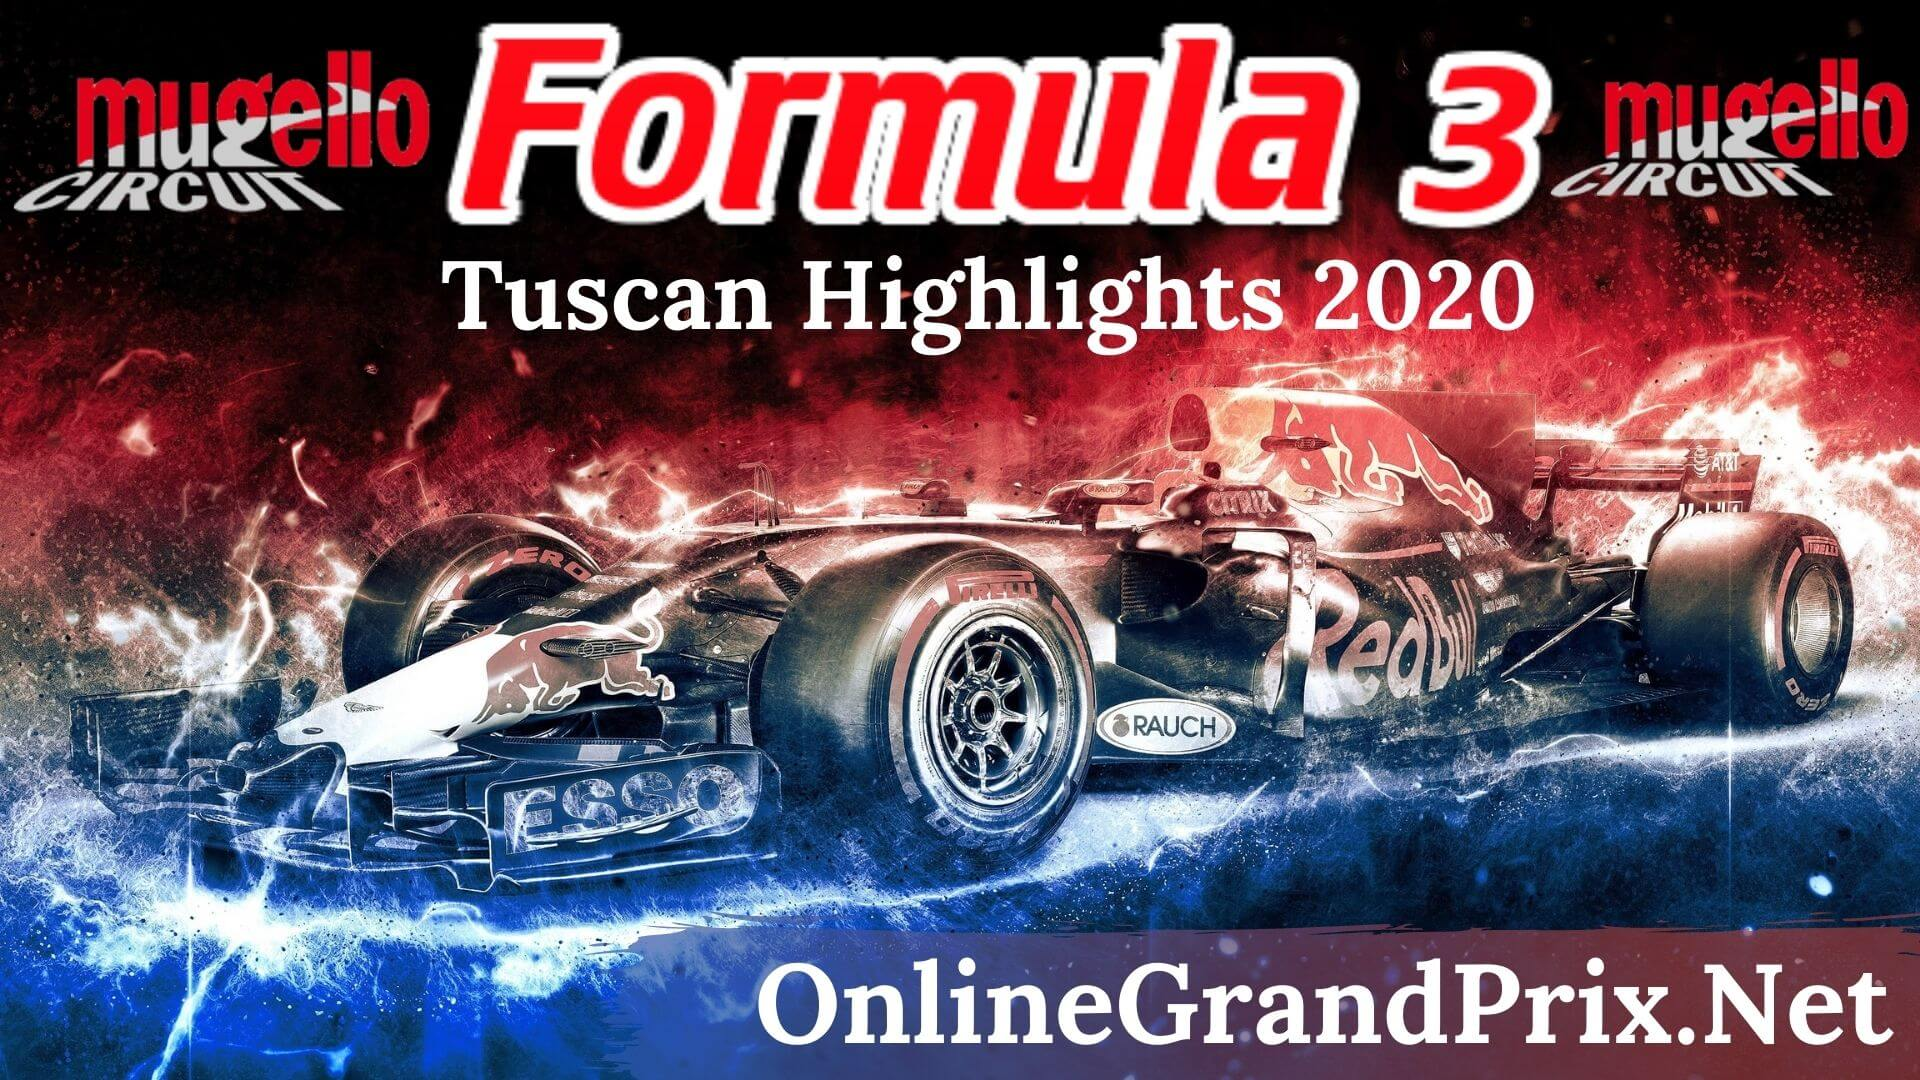 Tuscan GP F3 Highlights 2020